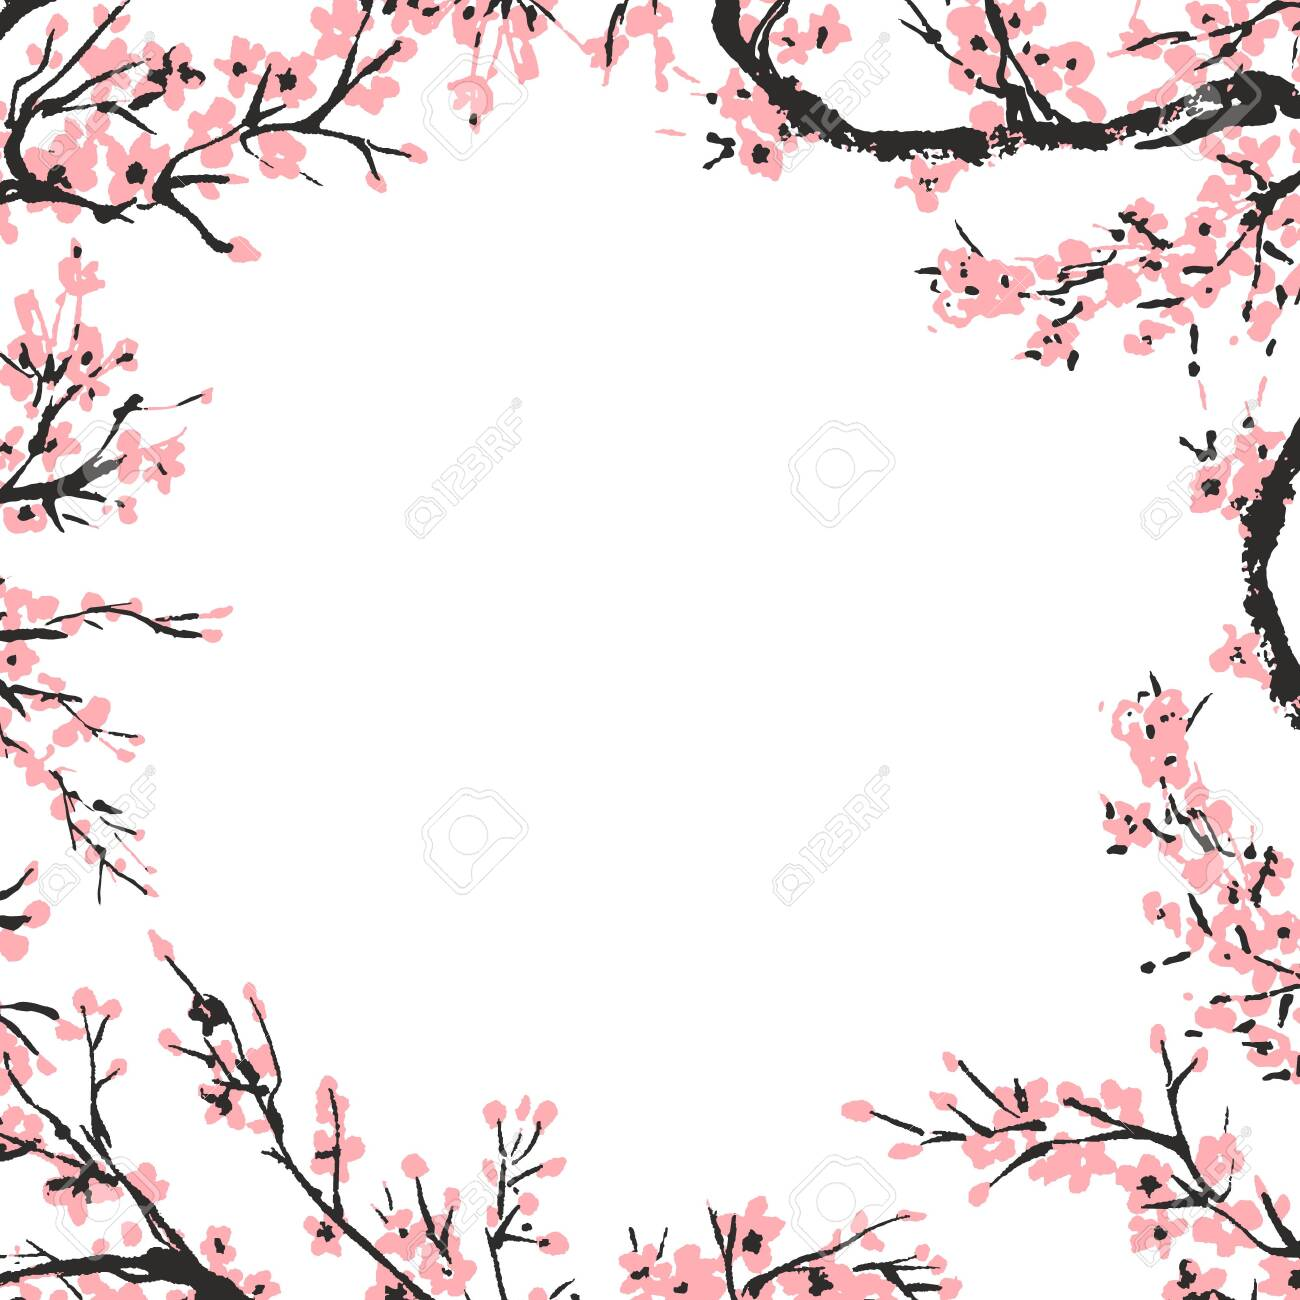 Cherry blossom spring floral template with hand drawnes branch with pink cherry flowers blooming. Sakura blossoming banner template. Chinese or Japanese traditional drawing. Vector. - 129030708